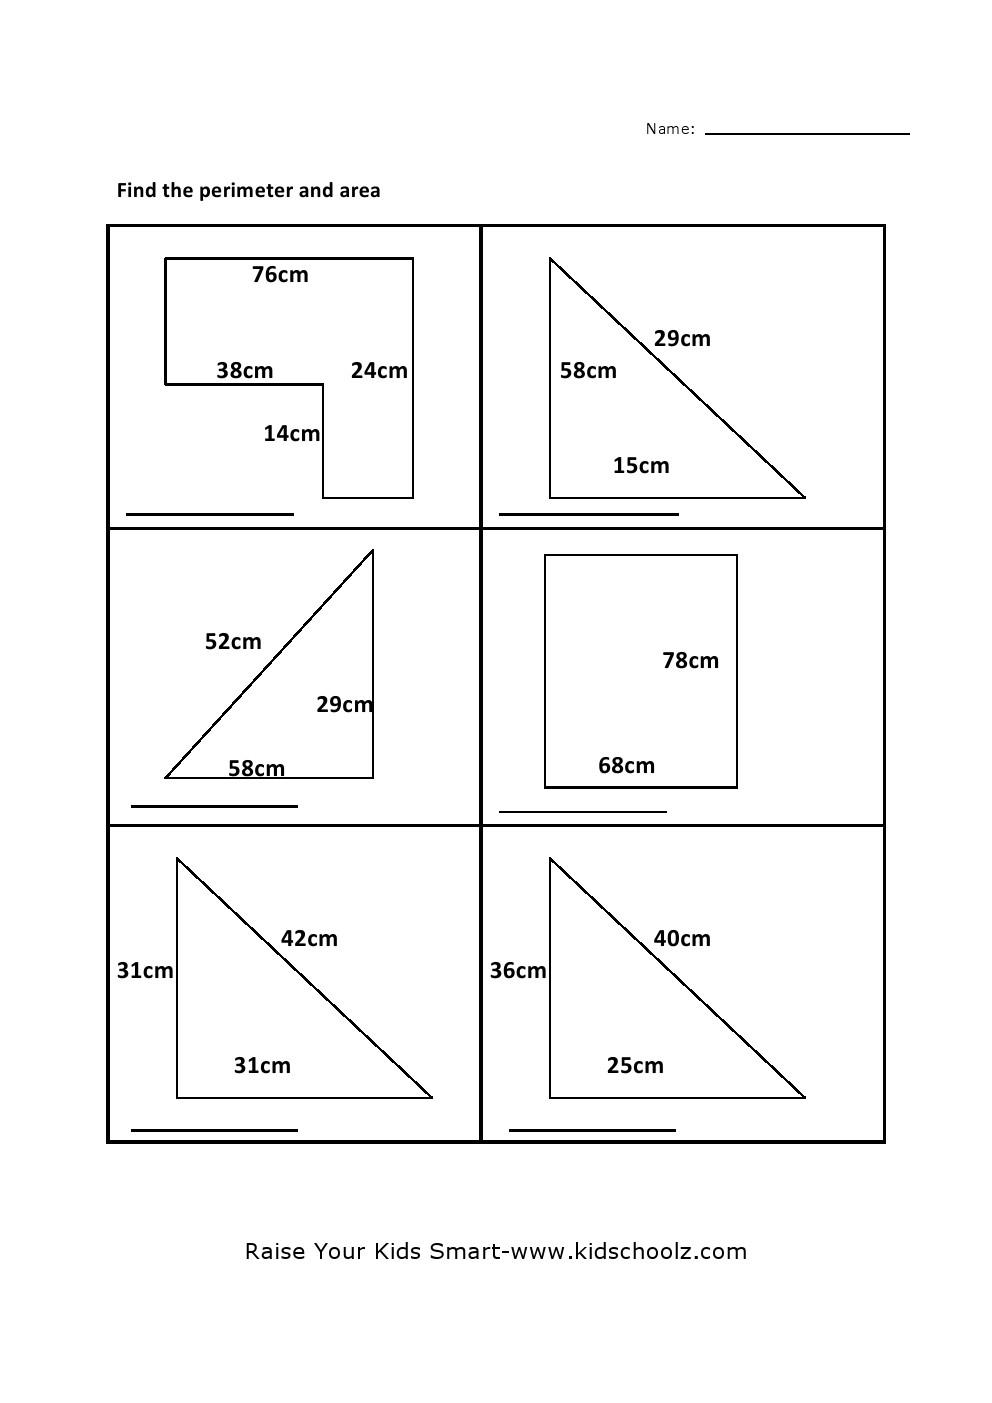 worksheet Finding Area Worksheets grade 5 perimeter area worksheet kidschoolz worksheet